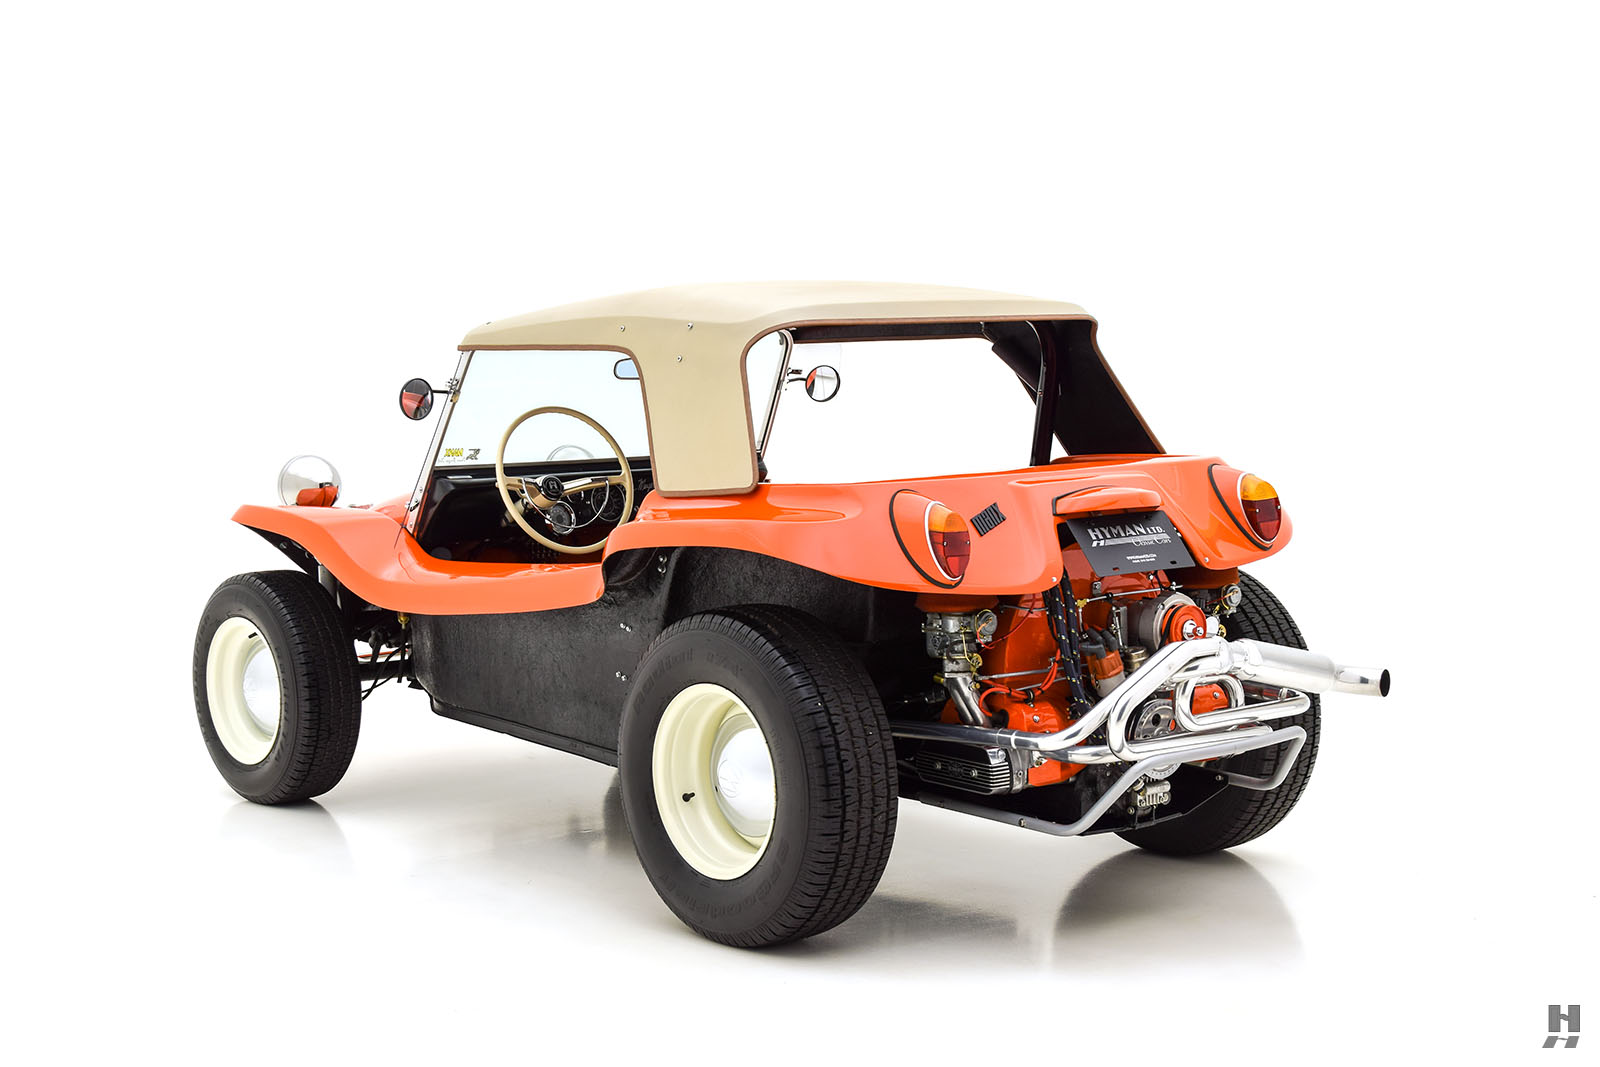 1966 Meyers Manx Dune Buggy For Sale | Buy Classic Cars